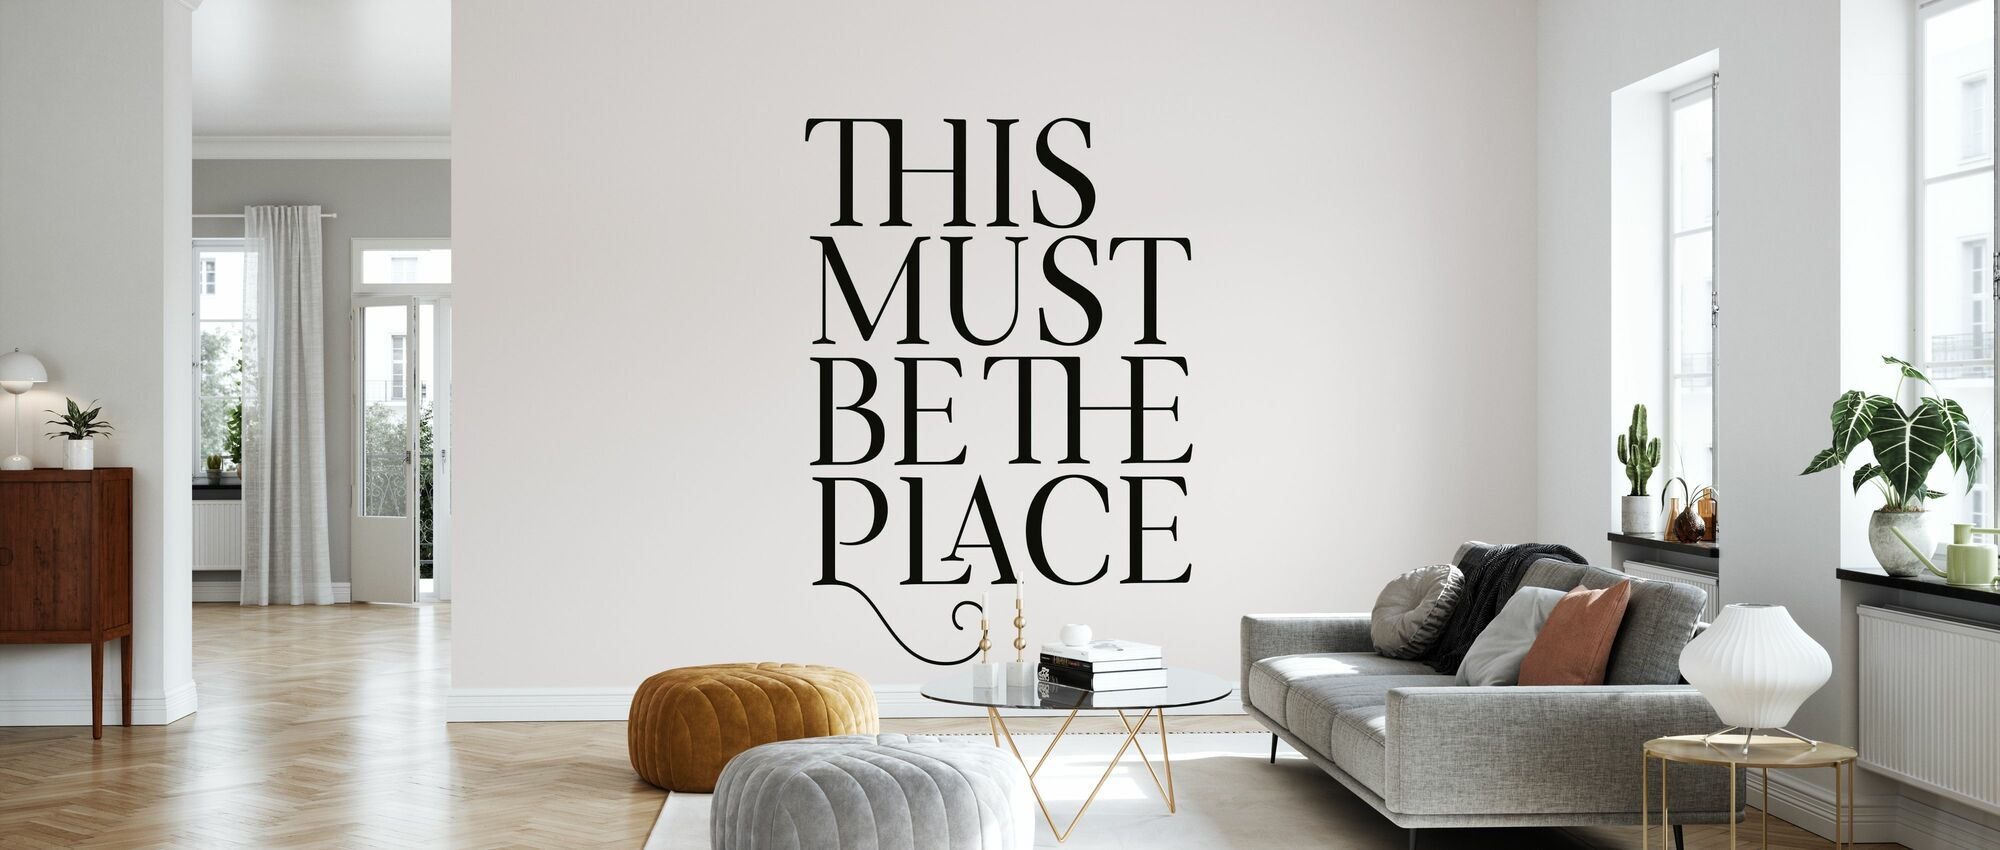 This Must Be the Place - Wallpaper - Living Room